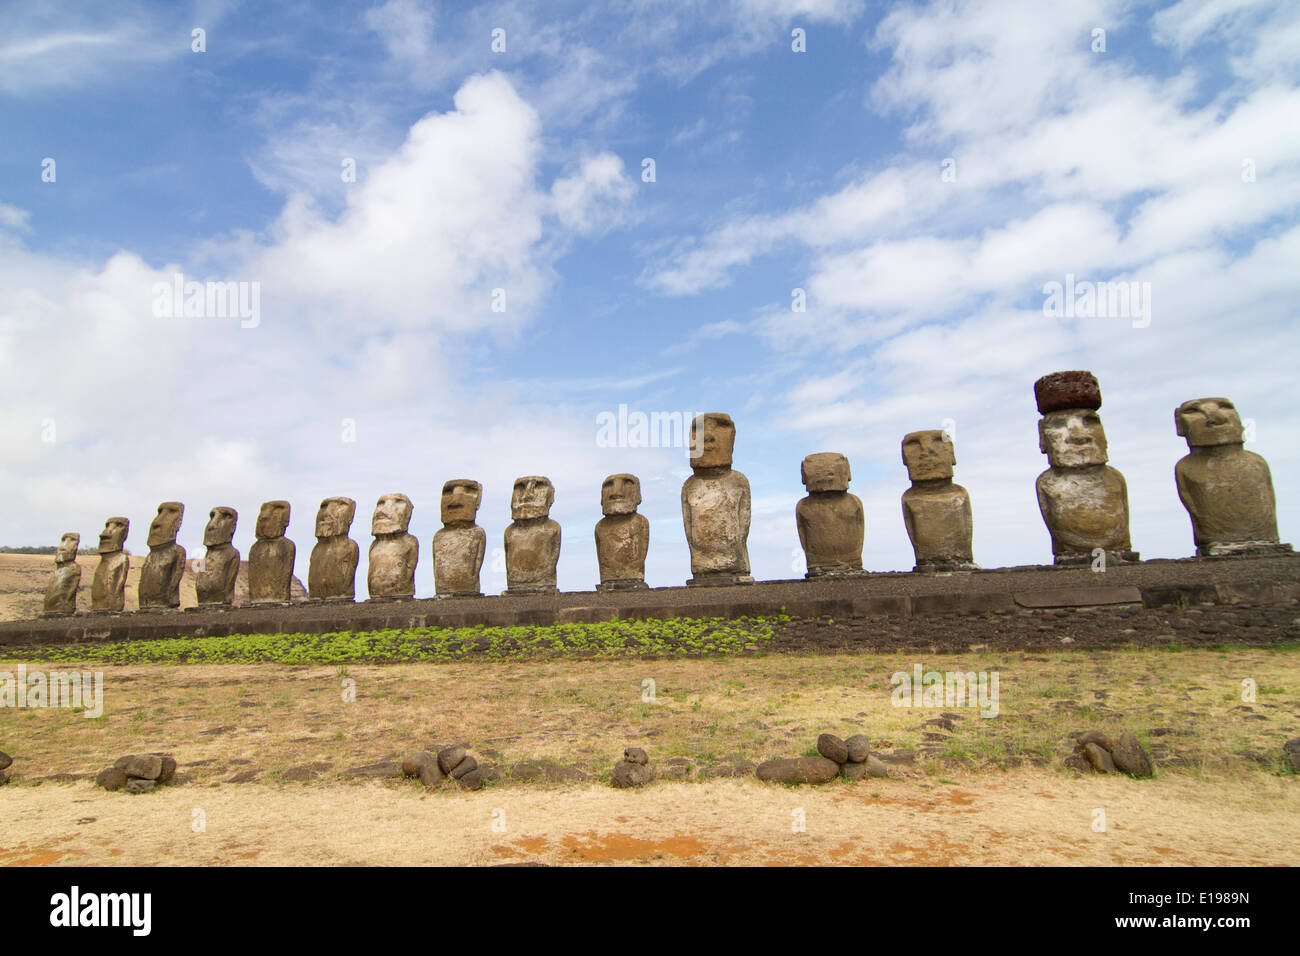 Fifteen statues called moai on a rock platform called abu, one of which has a tophat called pukao, at Ahu Tongariki - Stock Image